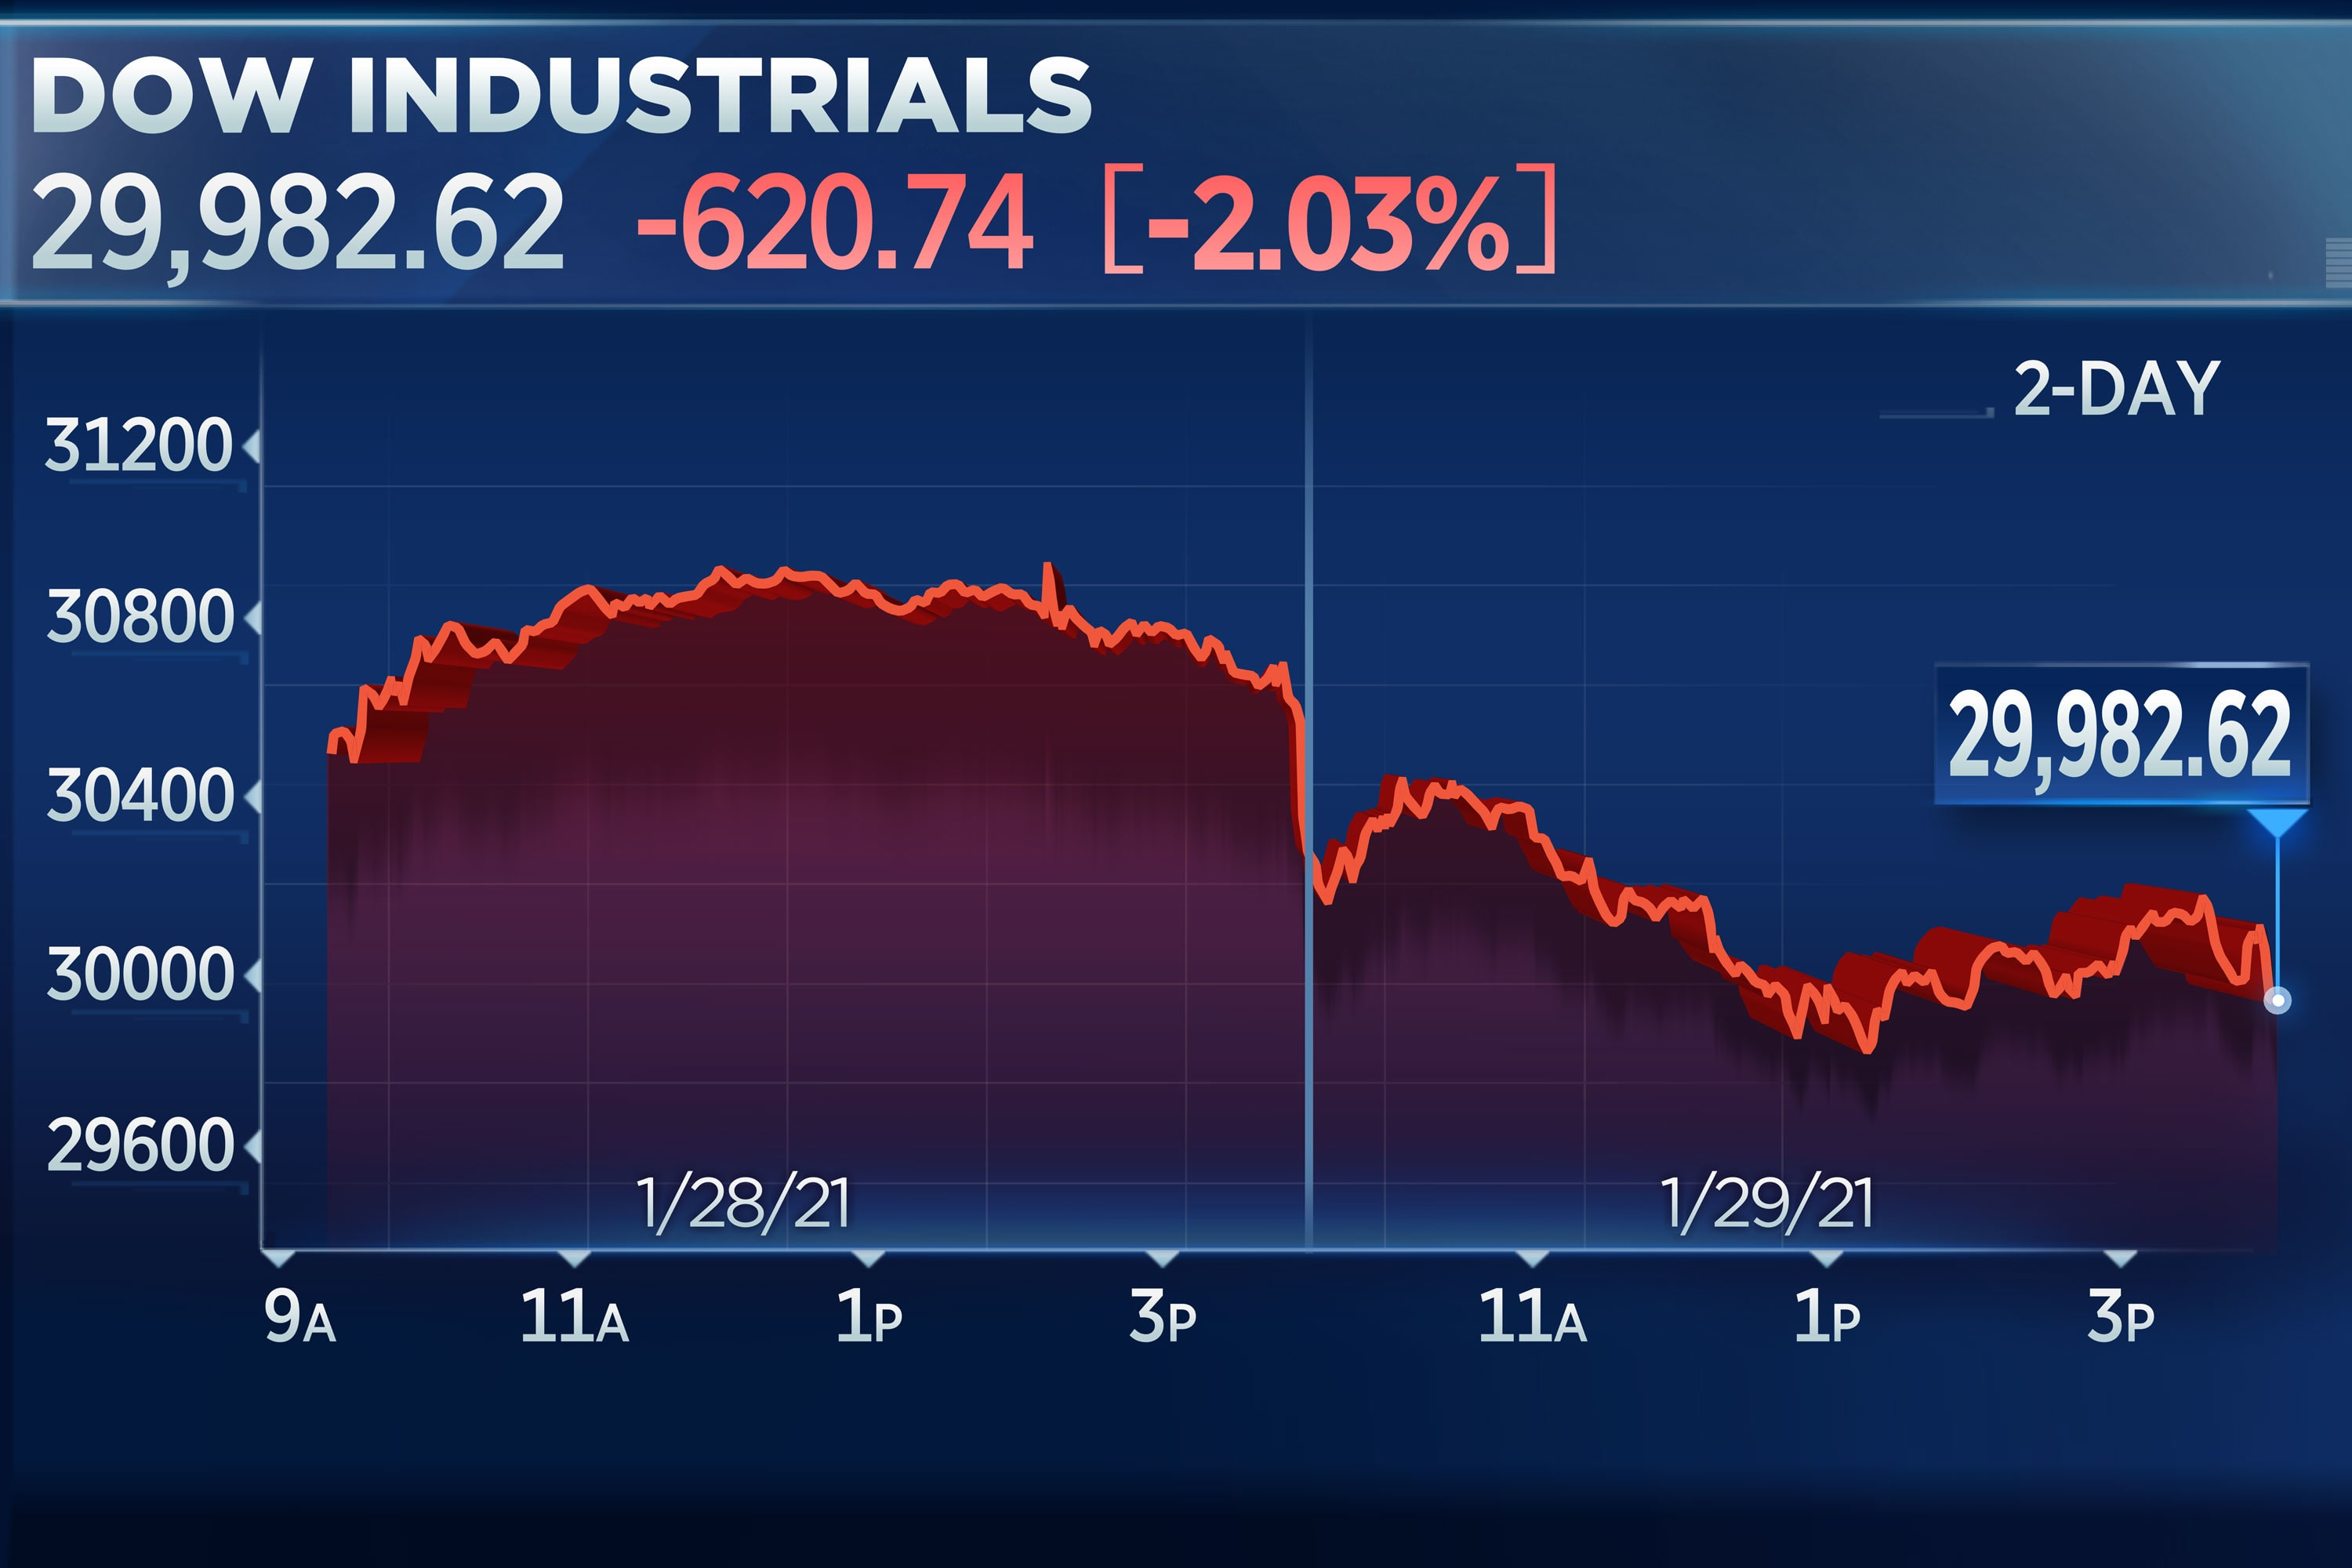 Dow falls 500 points, briefly falling below 30,000 amid concern about GameStop trading frenzy